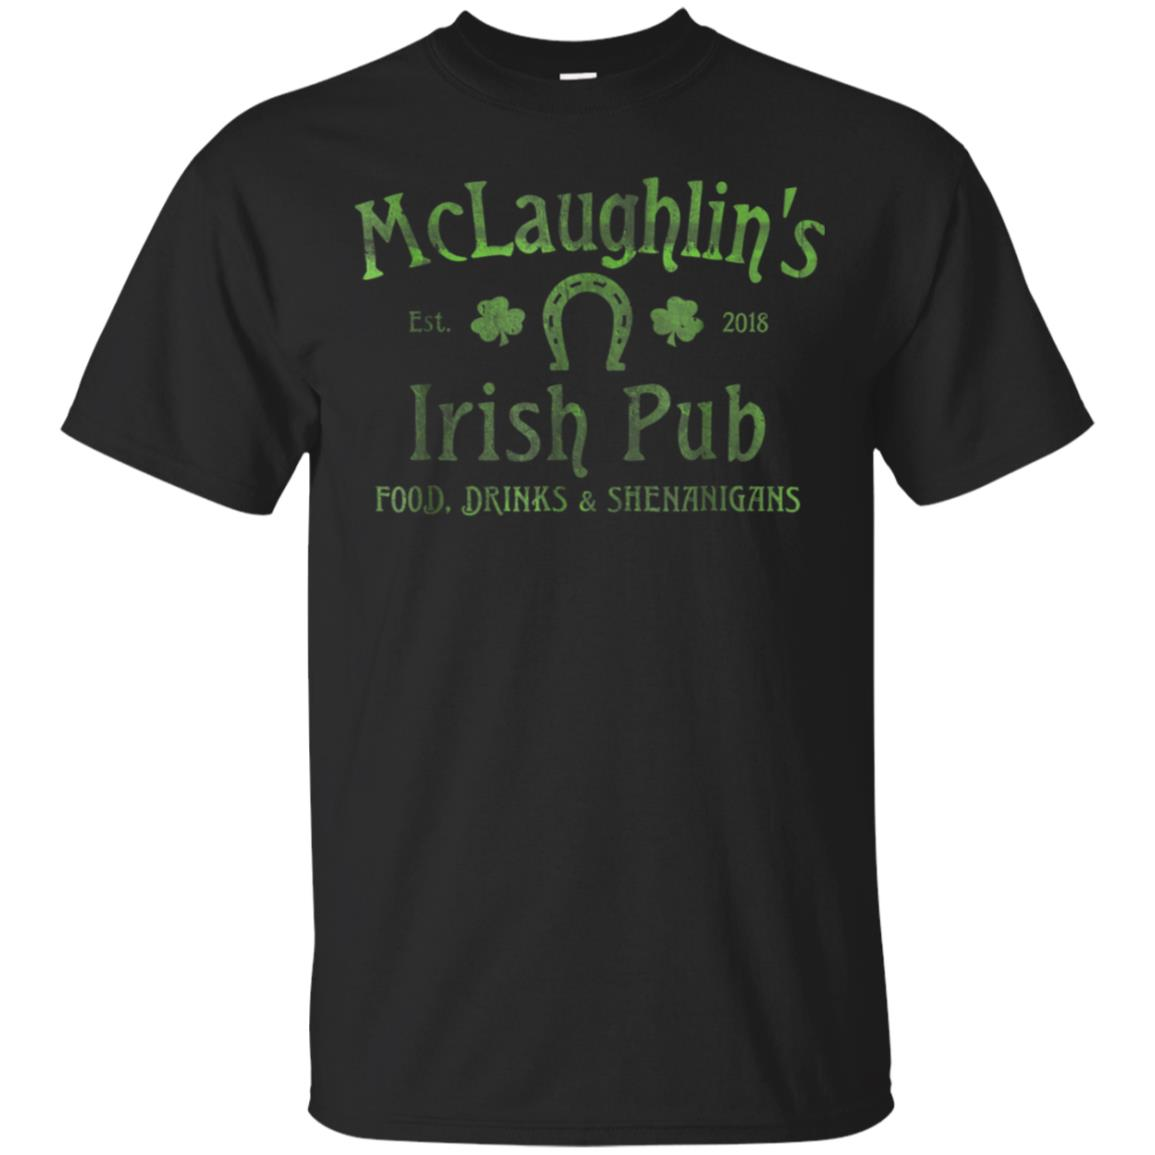 McLaughlin's Irish Pub T-Shirt St. Patrick's Day Party Shirt 99promocode